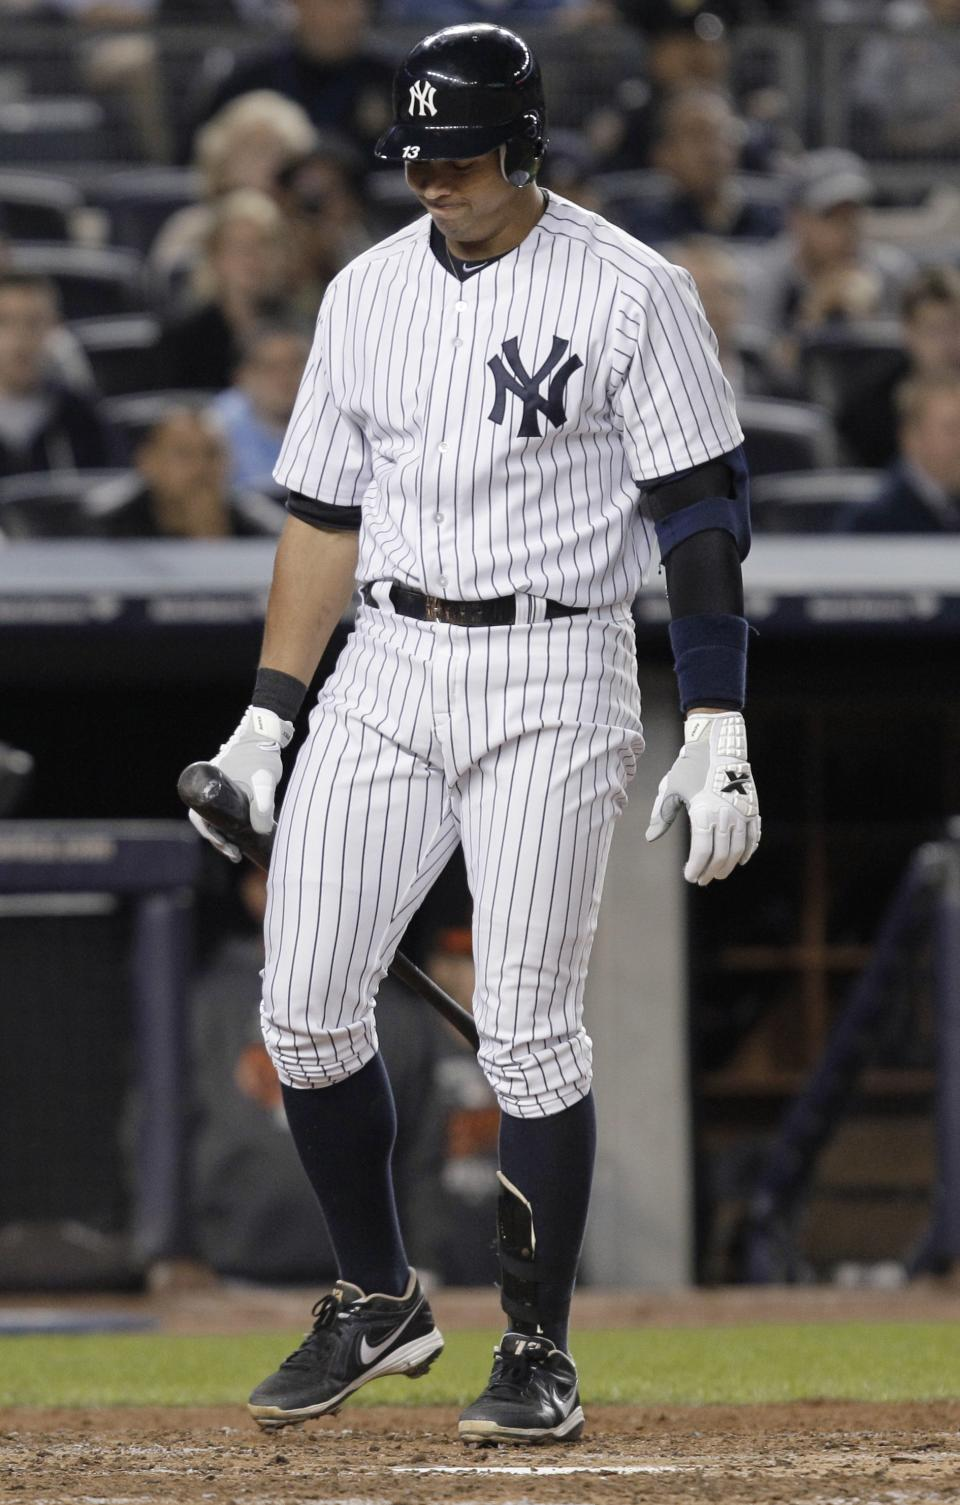 New York Yankees' Alex Rodriguez looks down after striking out during the sixth inning against the Baltimore Orioles in Game 3 of the American League division baseball series, Wednesday, Oct. 10, 2012, in New York. (AP Photo/Kathy Willens)